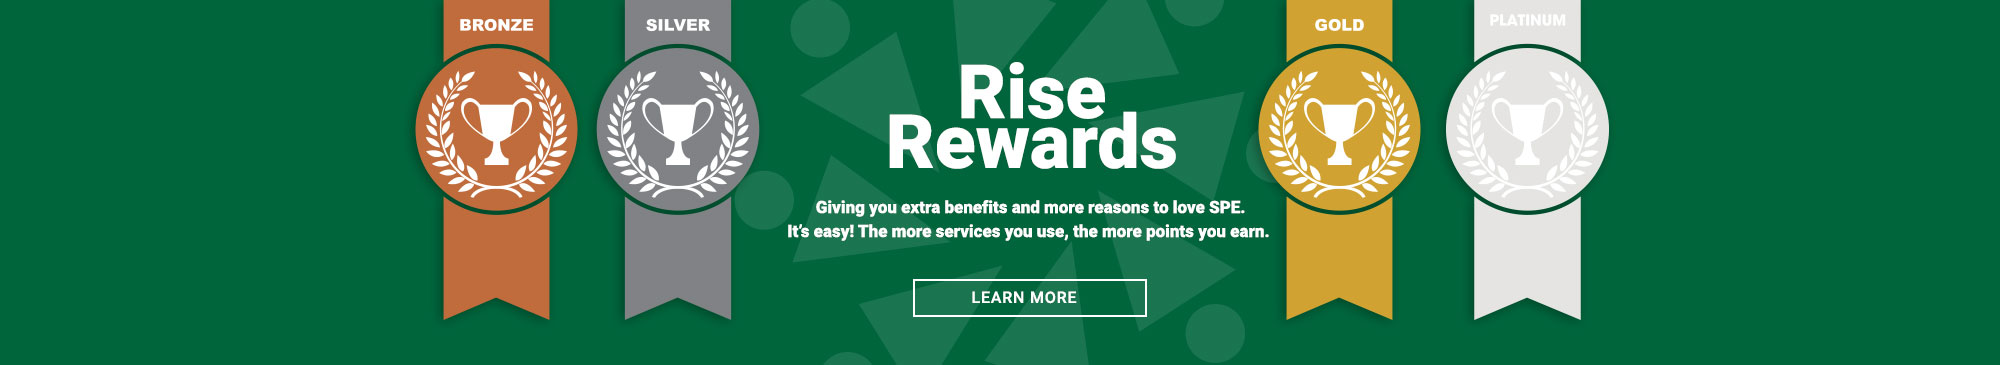 rise rewards, reward accounts, bronze, silver, gold, platinum medals